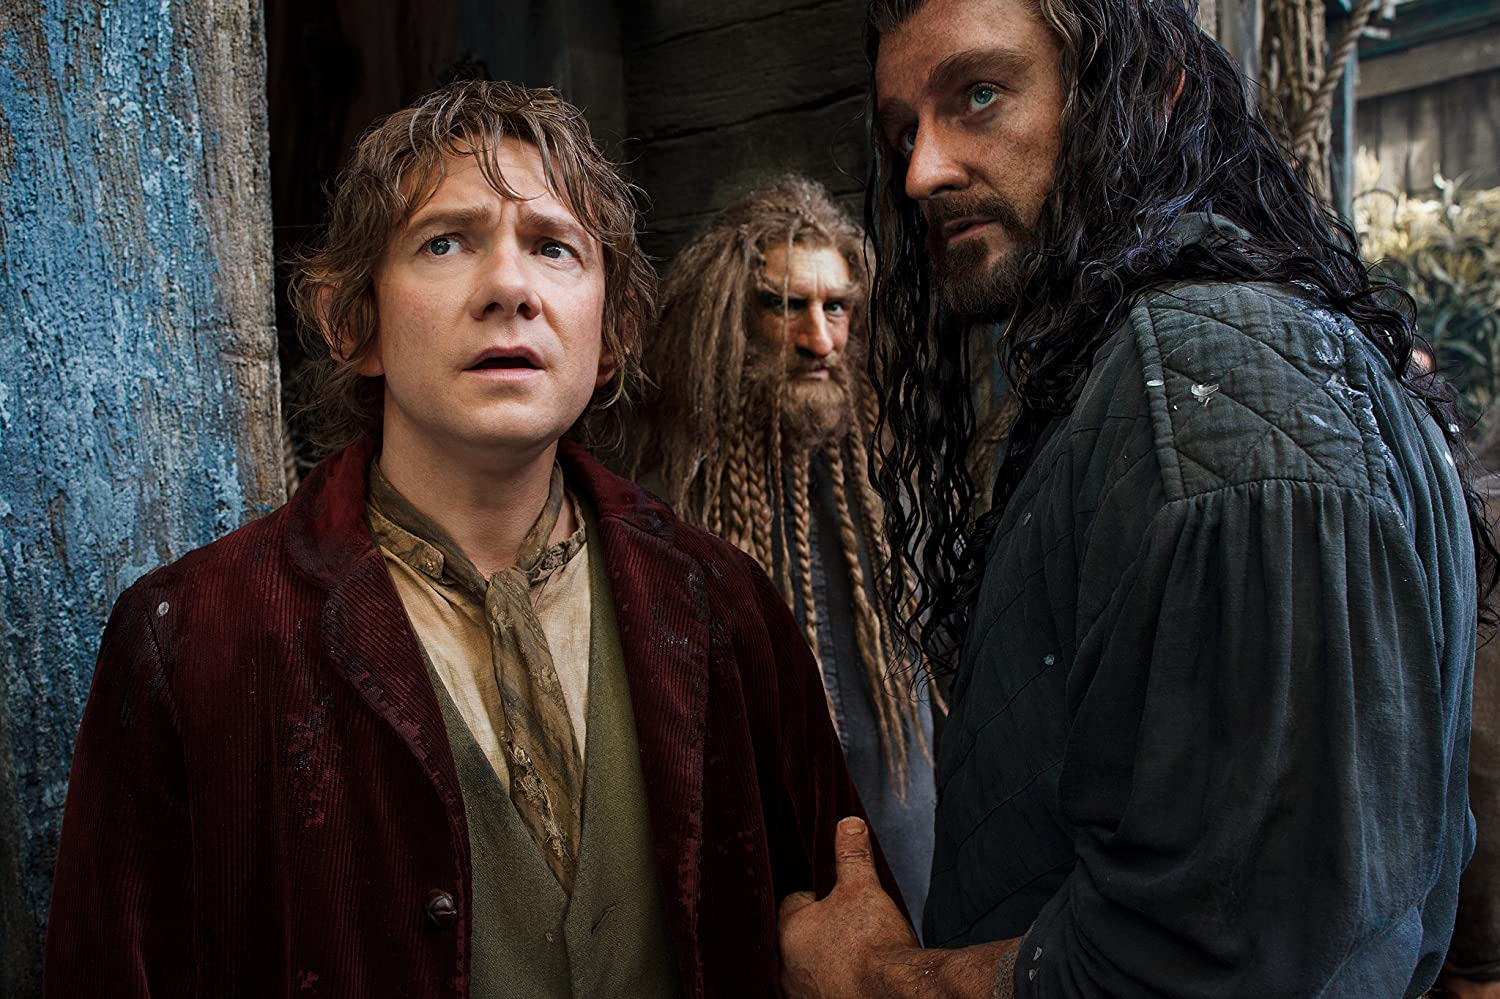 Richard Armitage, Jed Brophy, and Martin Freeman in The Hobbit: The Desolation of Smaug (2013)